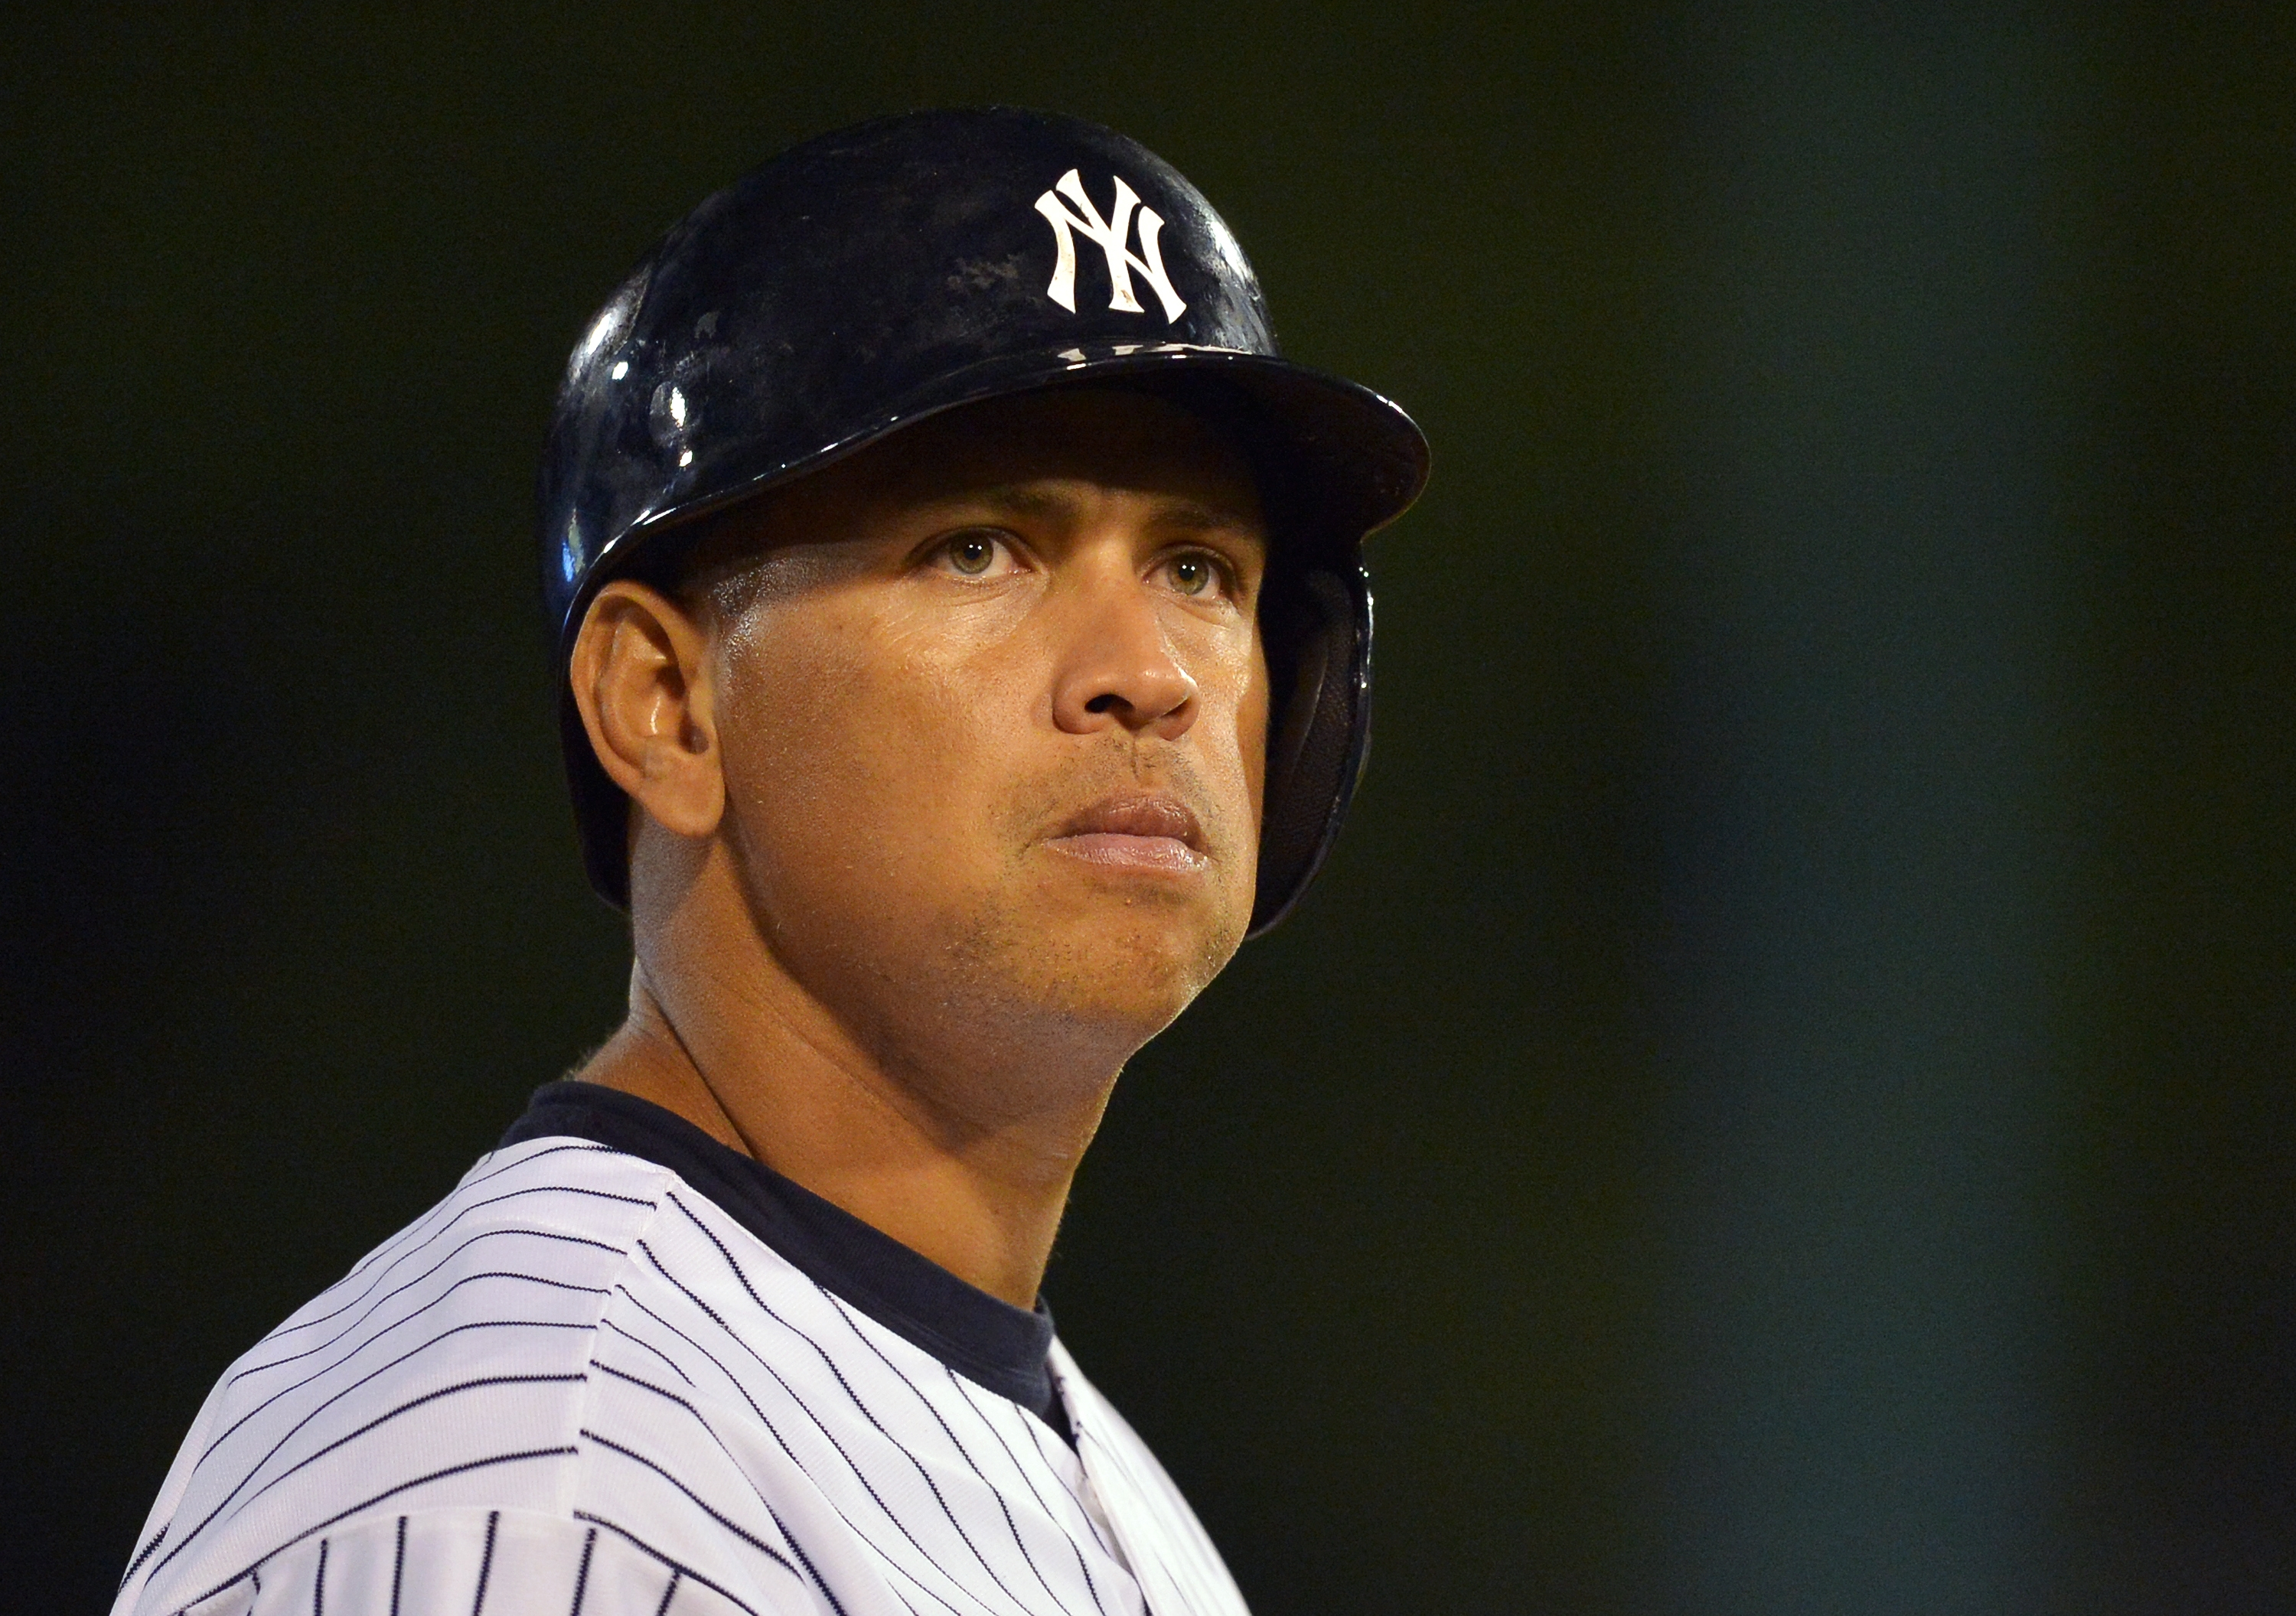 New York Yankee Alex Rodriguez, shown in a recent photo, testified before a grand jury in Buffalo in 2010. The record of what he said is either sealed under court order or has been labeled confidential by the FBI.